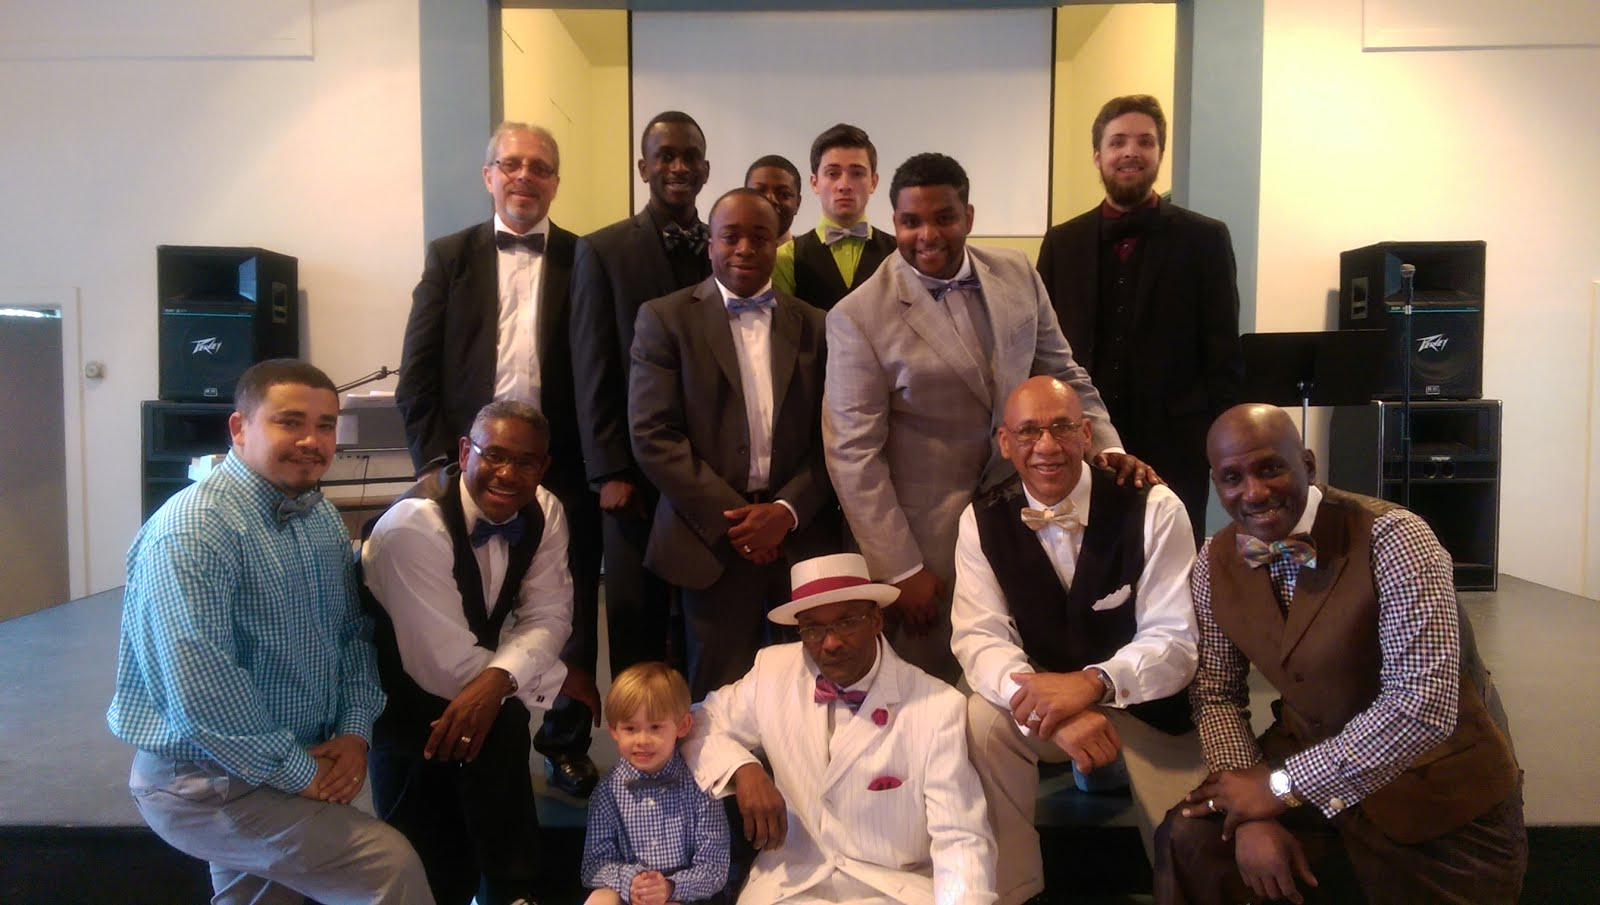 Bow Tie day at church